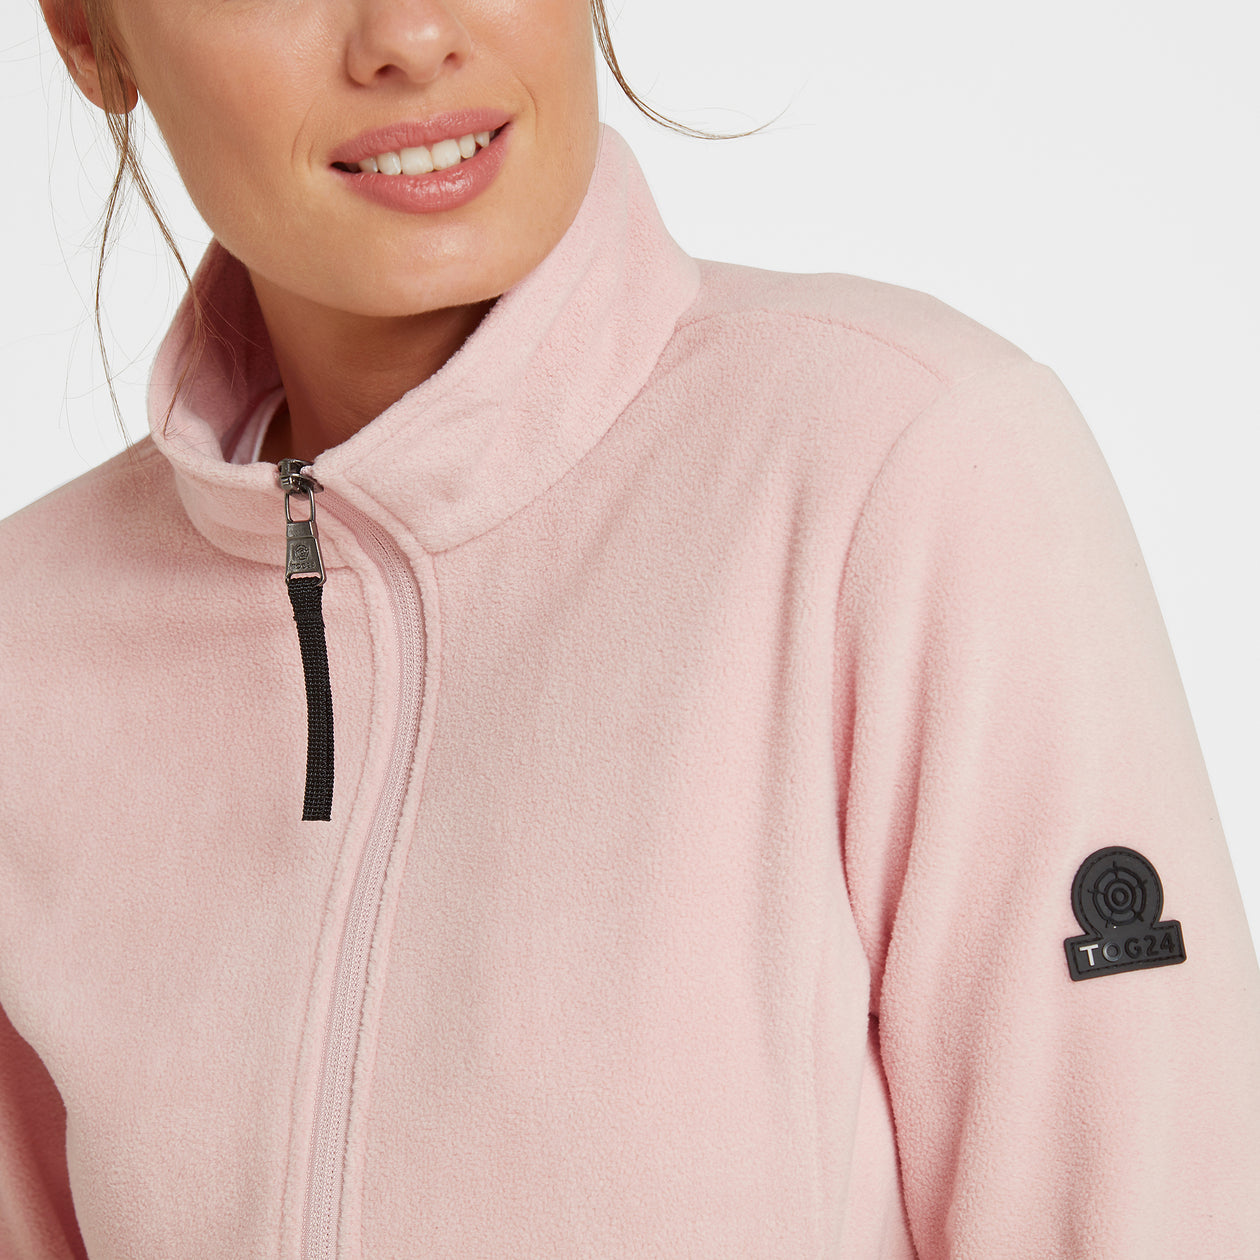 Shire Womens Fleece Jacket - Rose Pink image 4